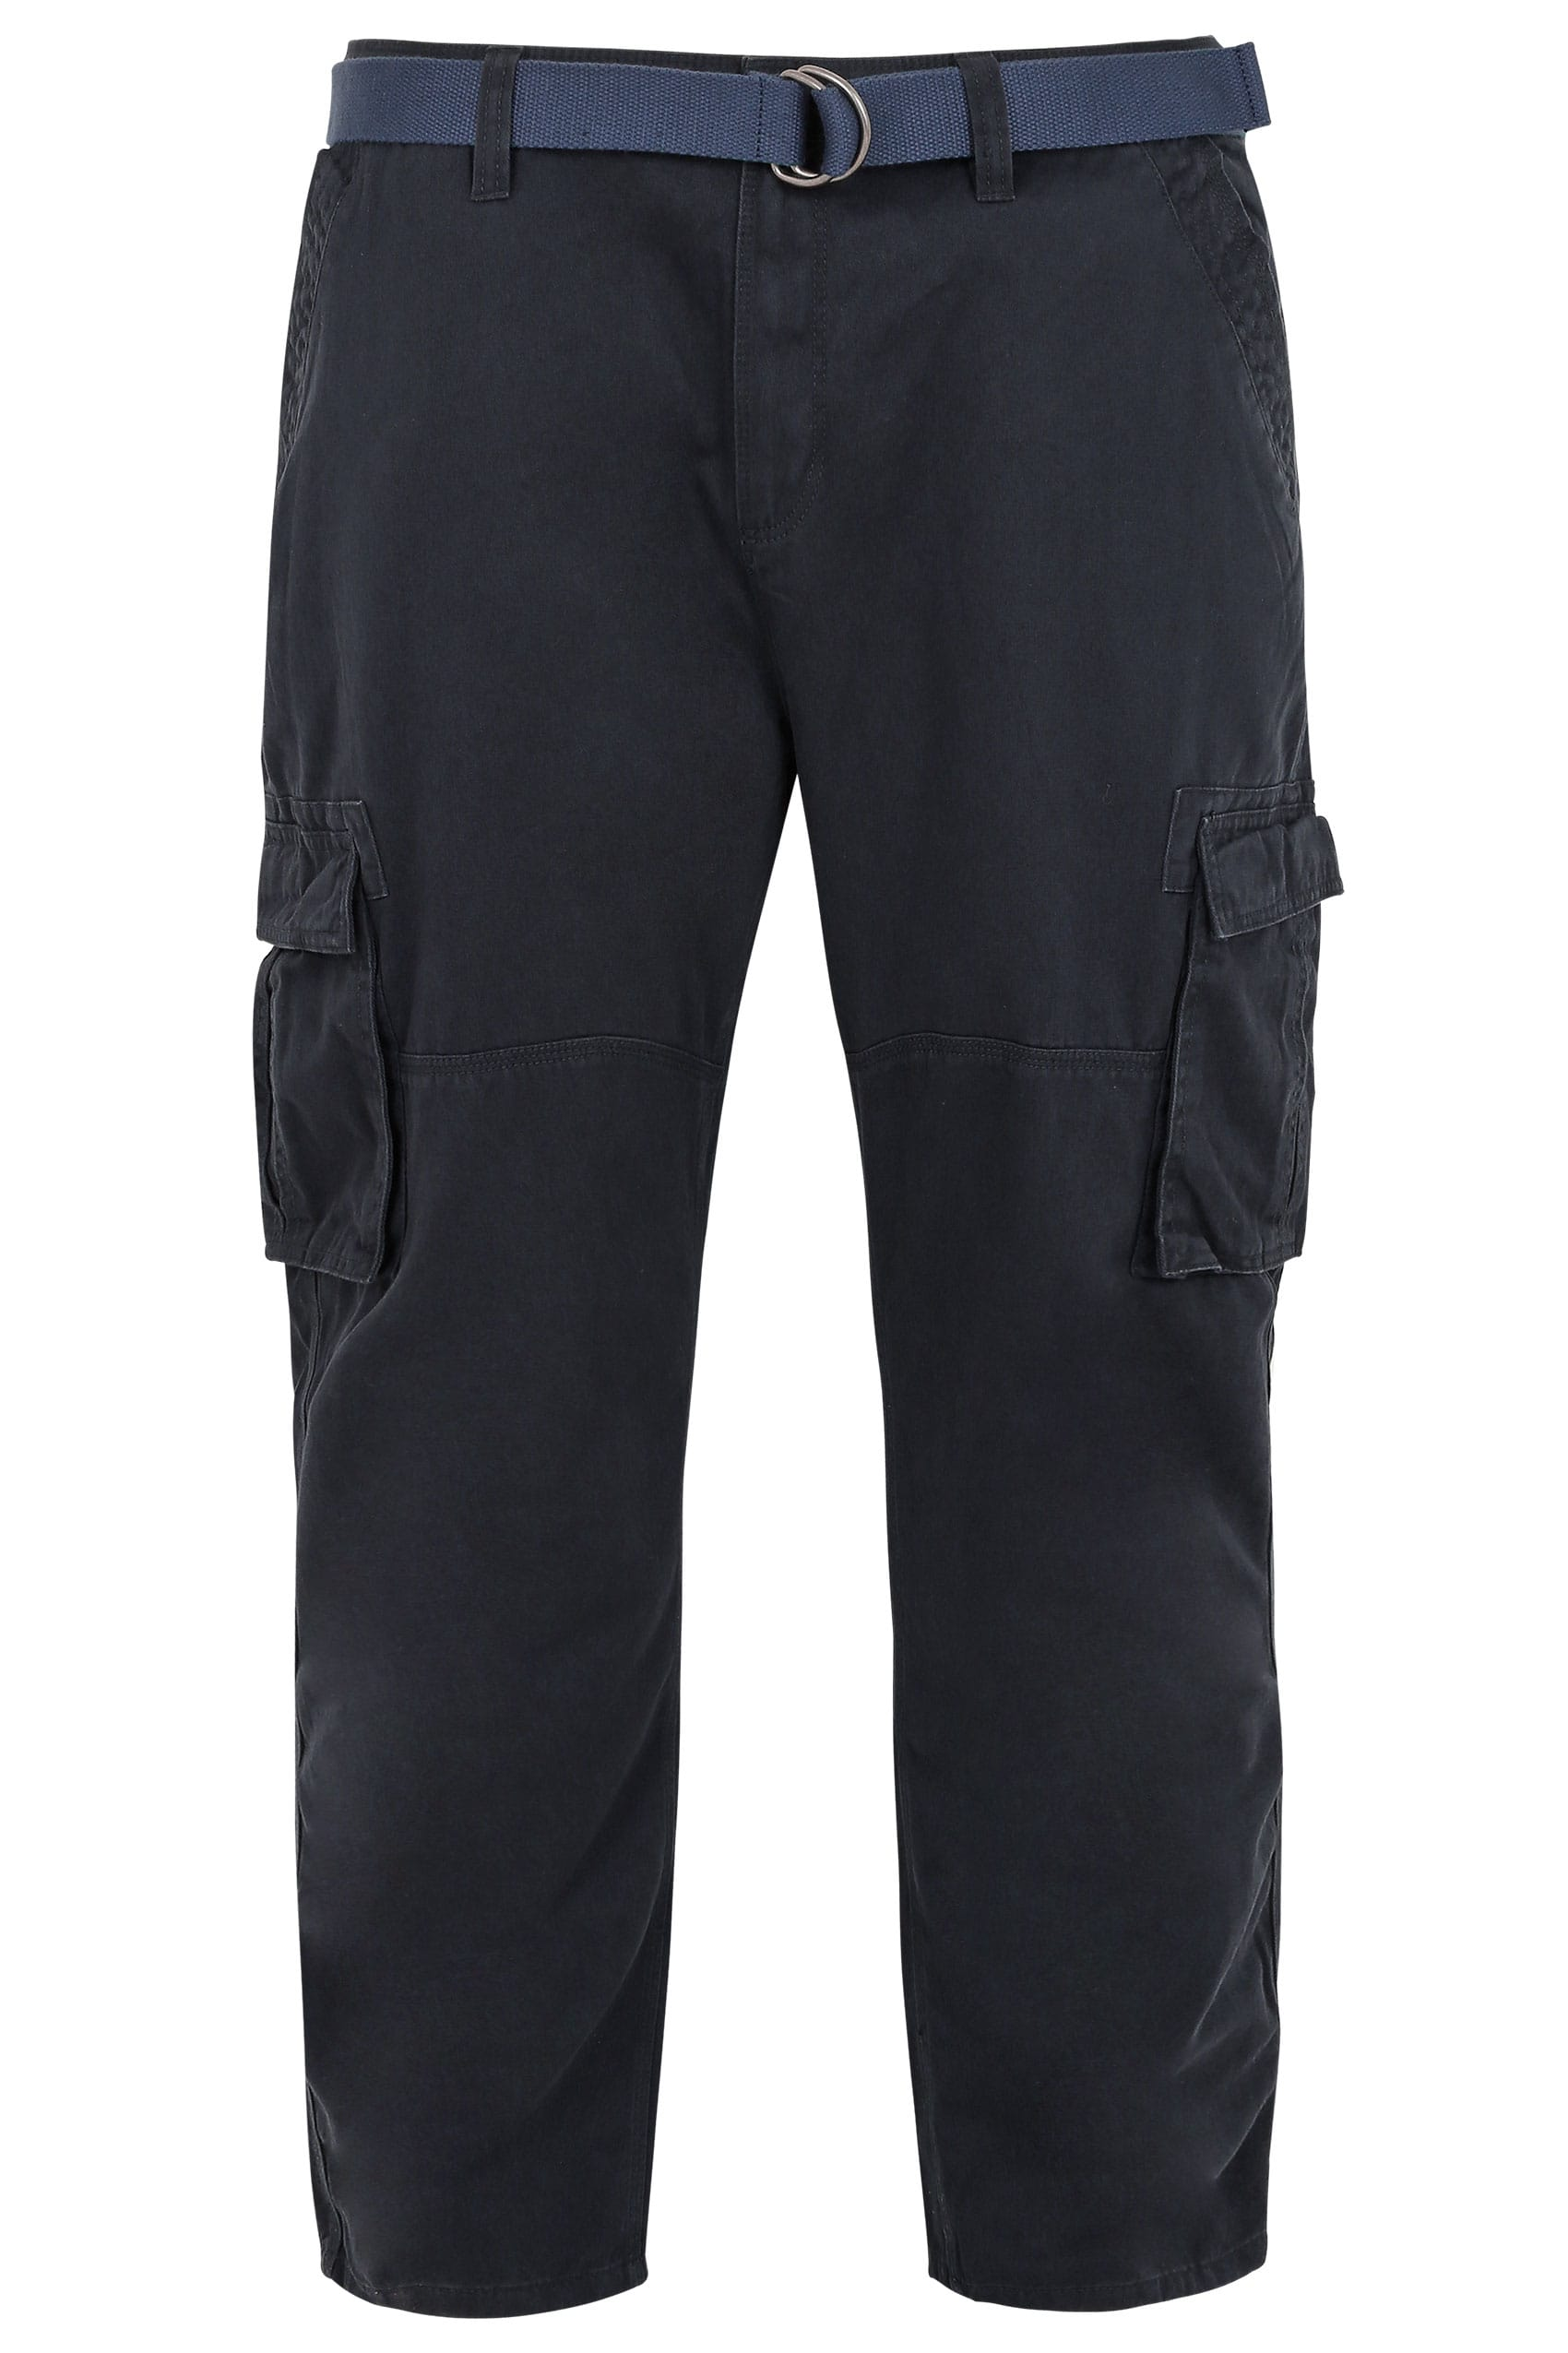 BadRhino Navy Cargo Trousers With Utility Pockets & Canvas Belt